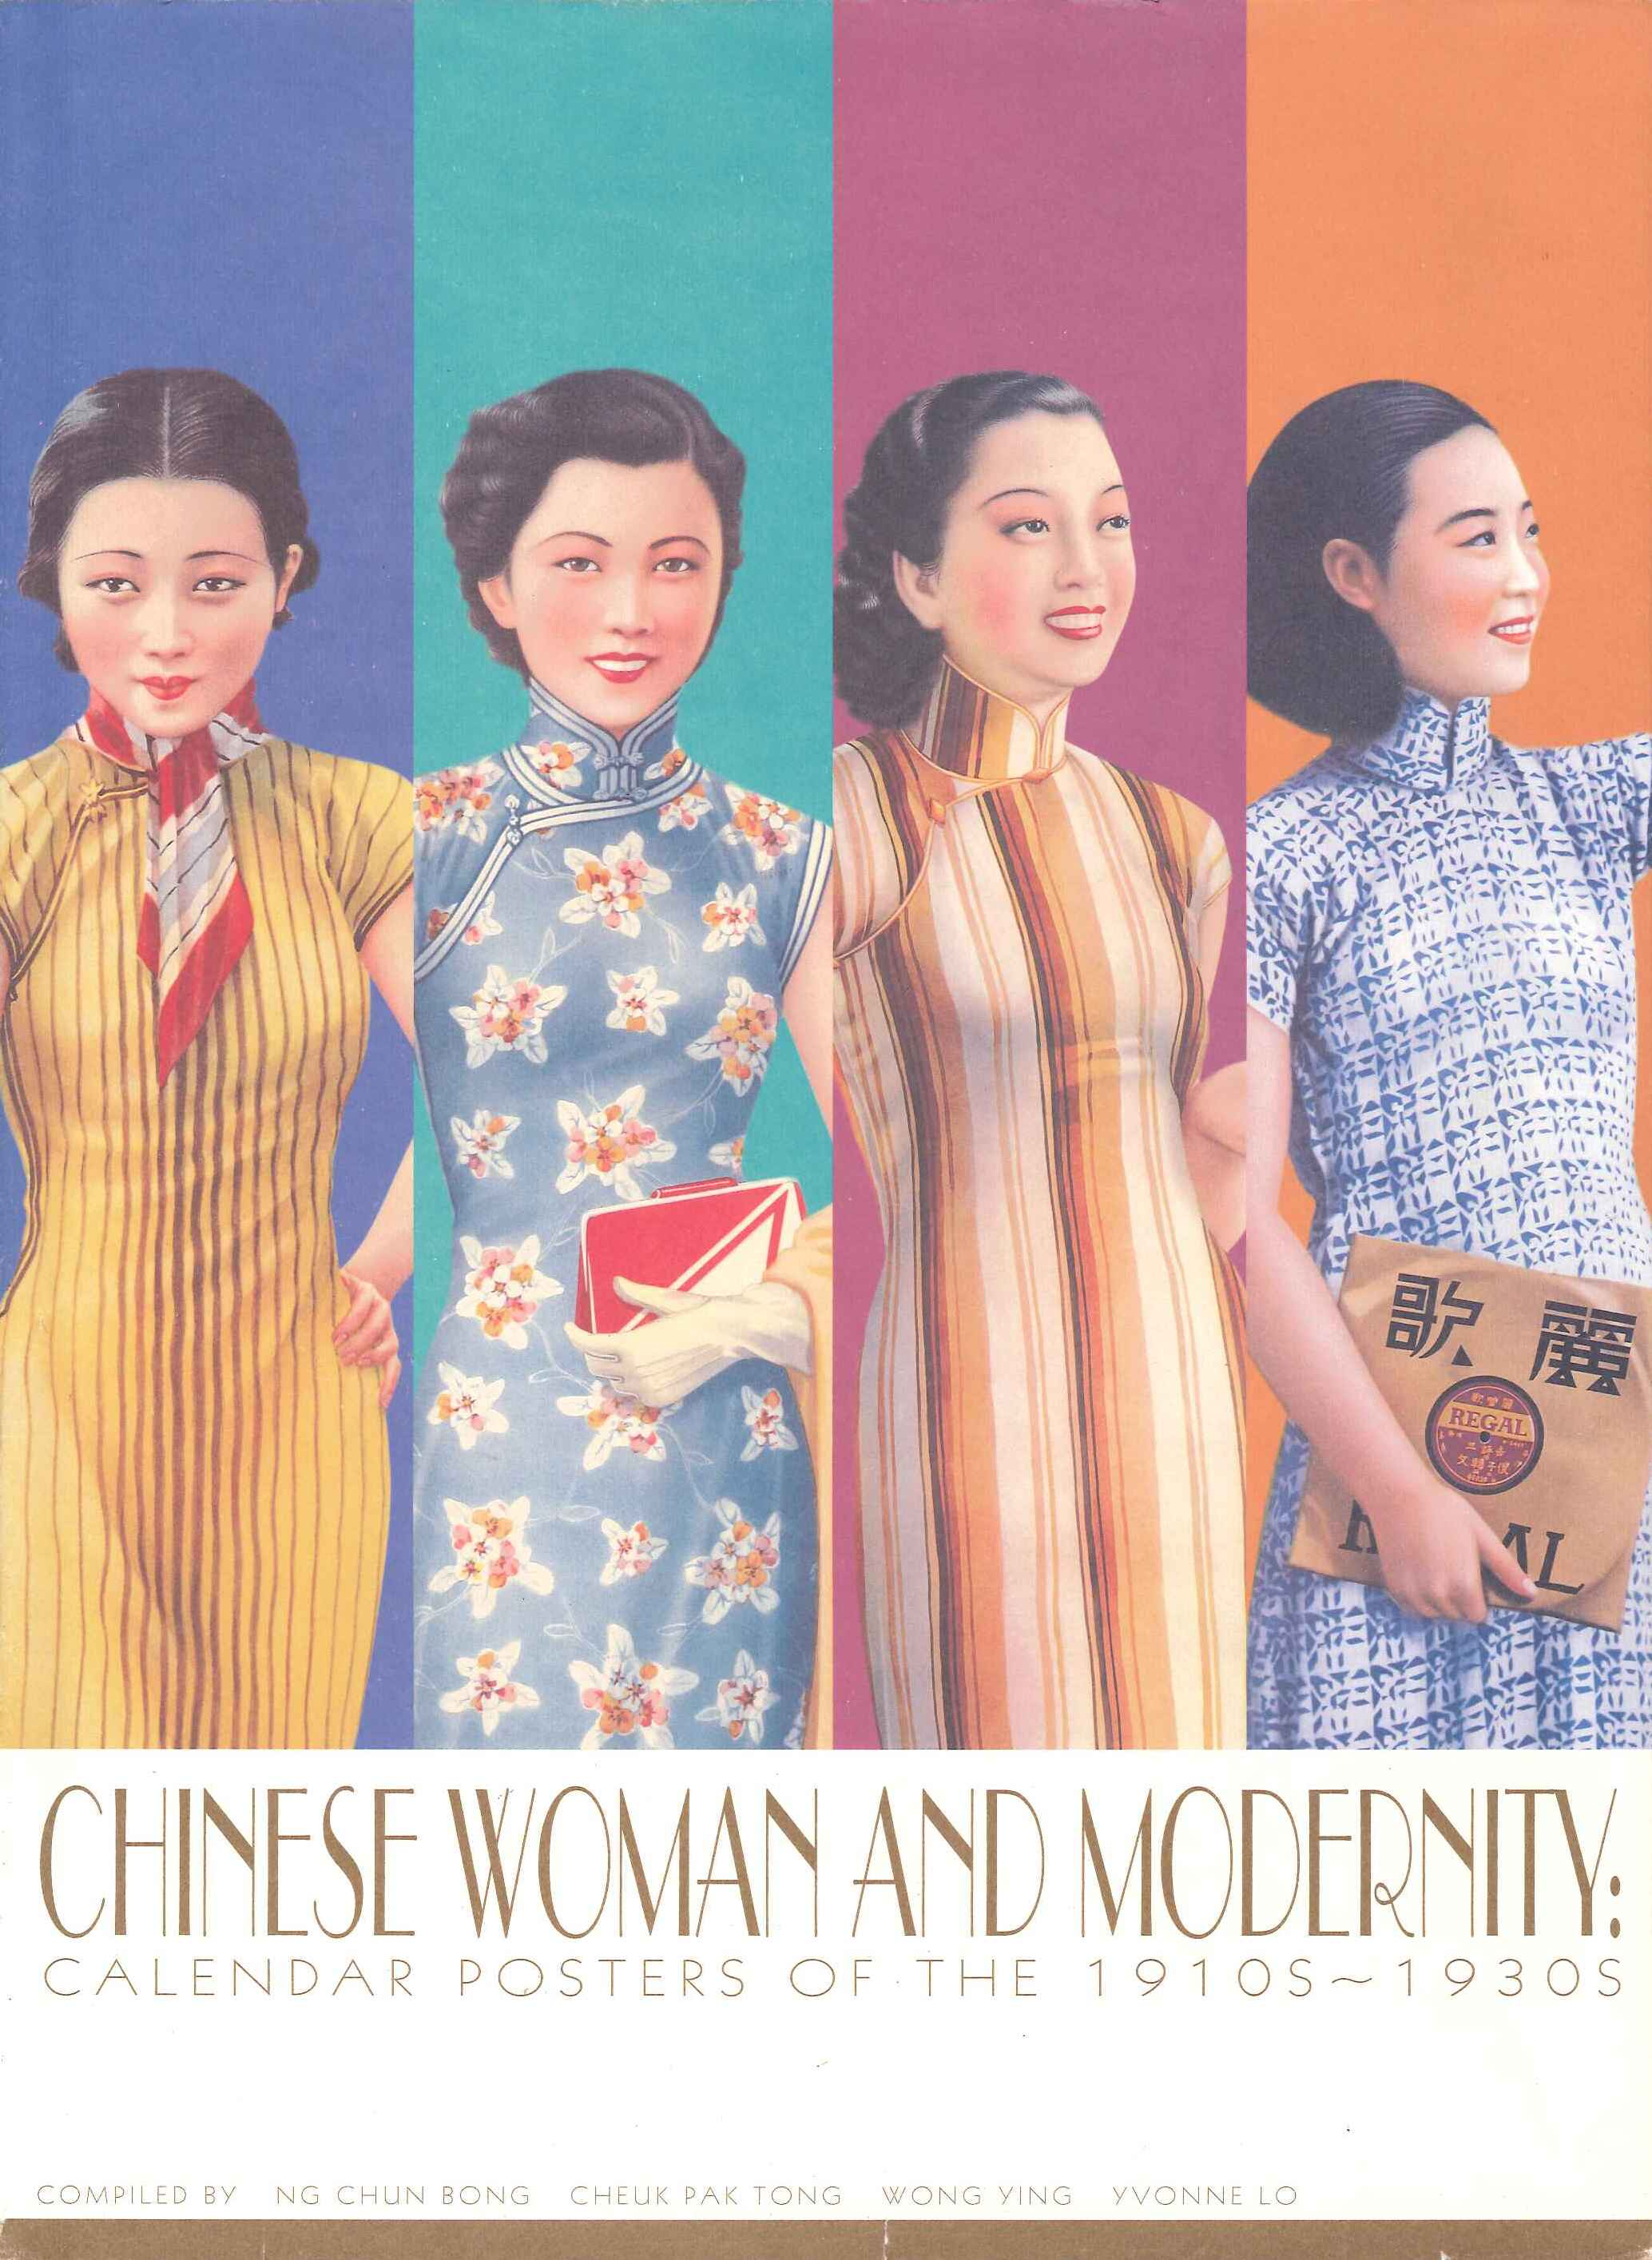 Chinese Woman and Modernity: Calendar Posters of the 1910s1930s